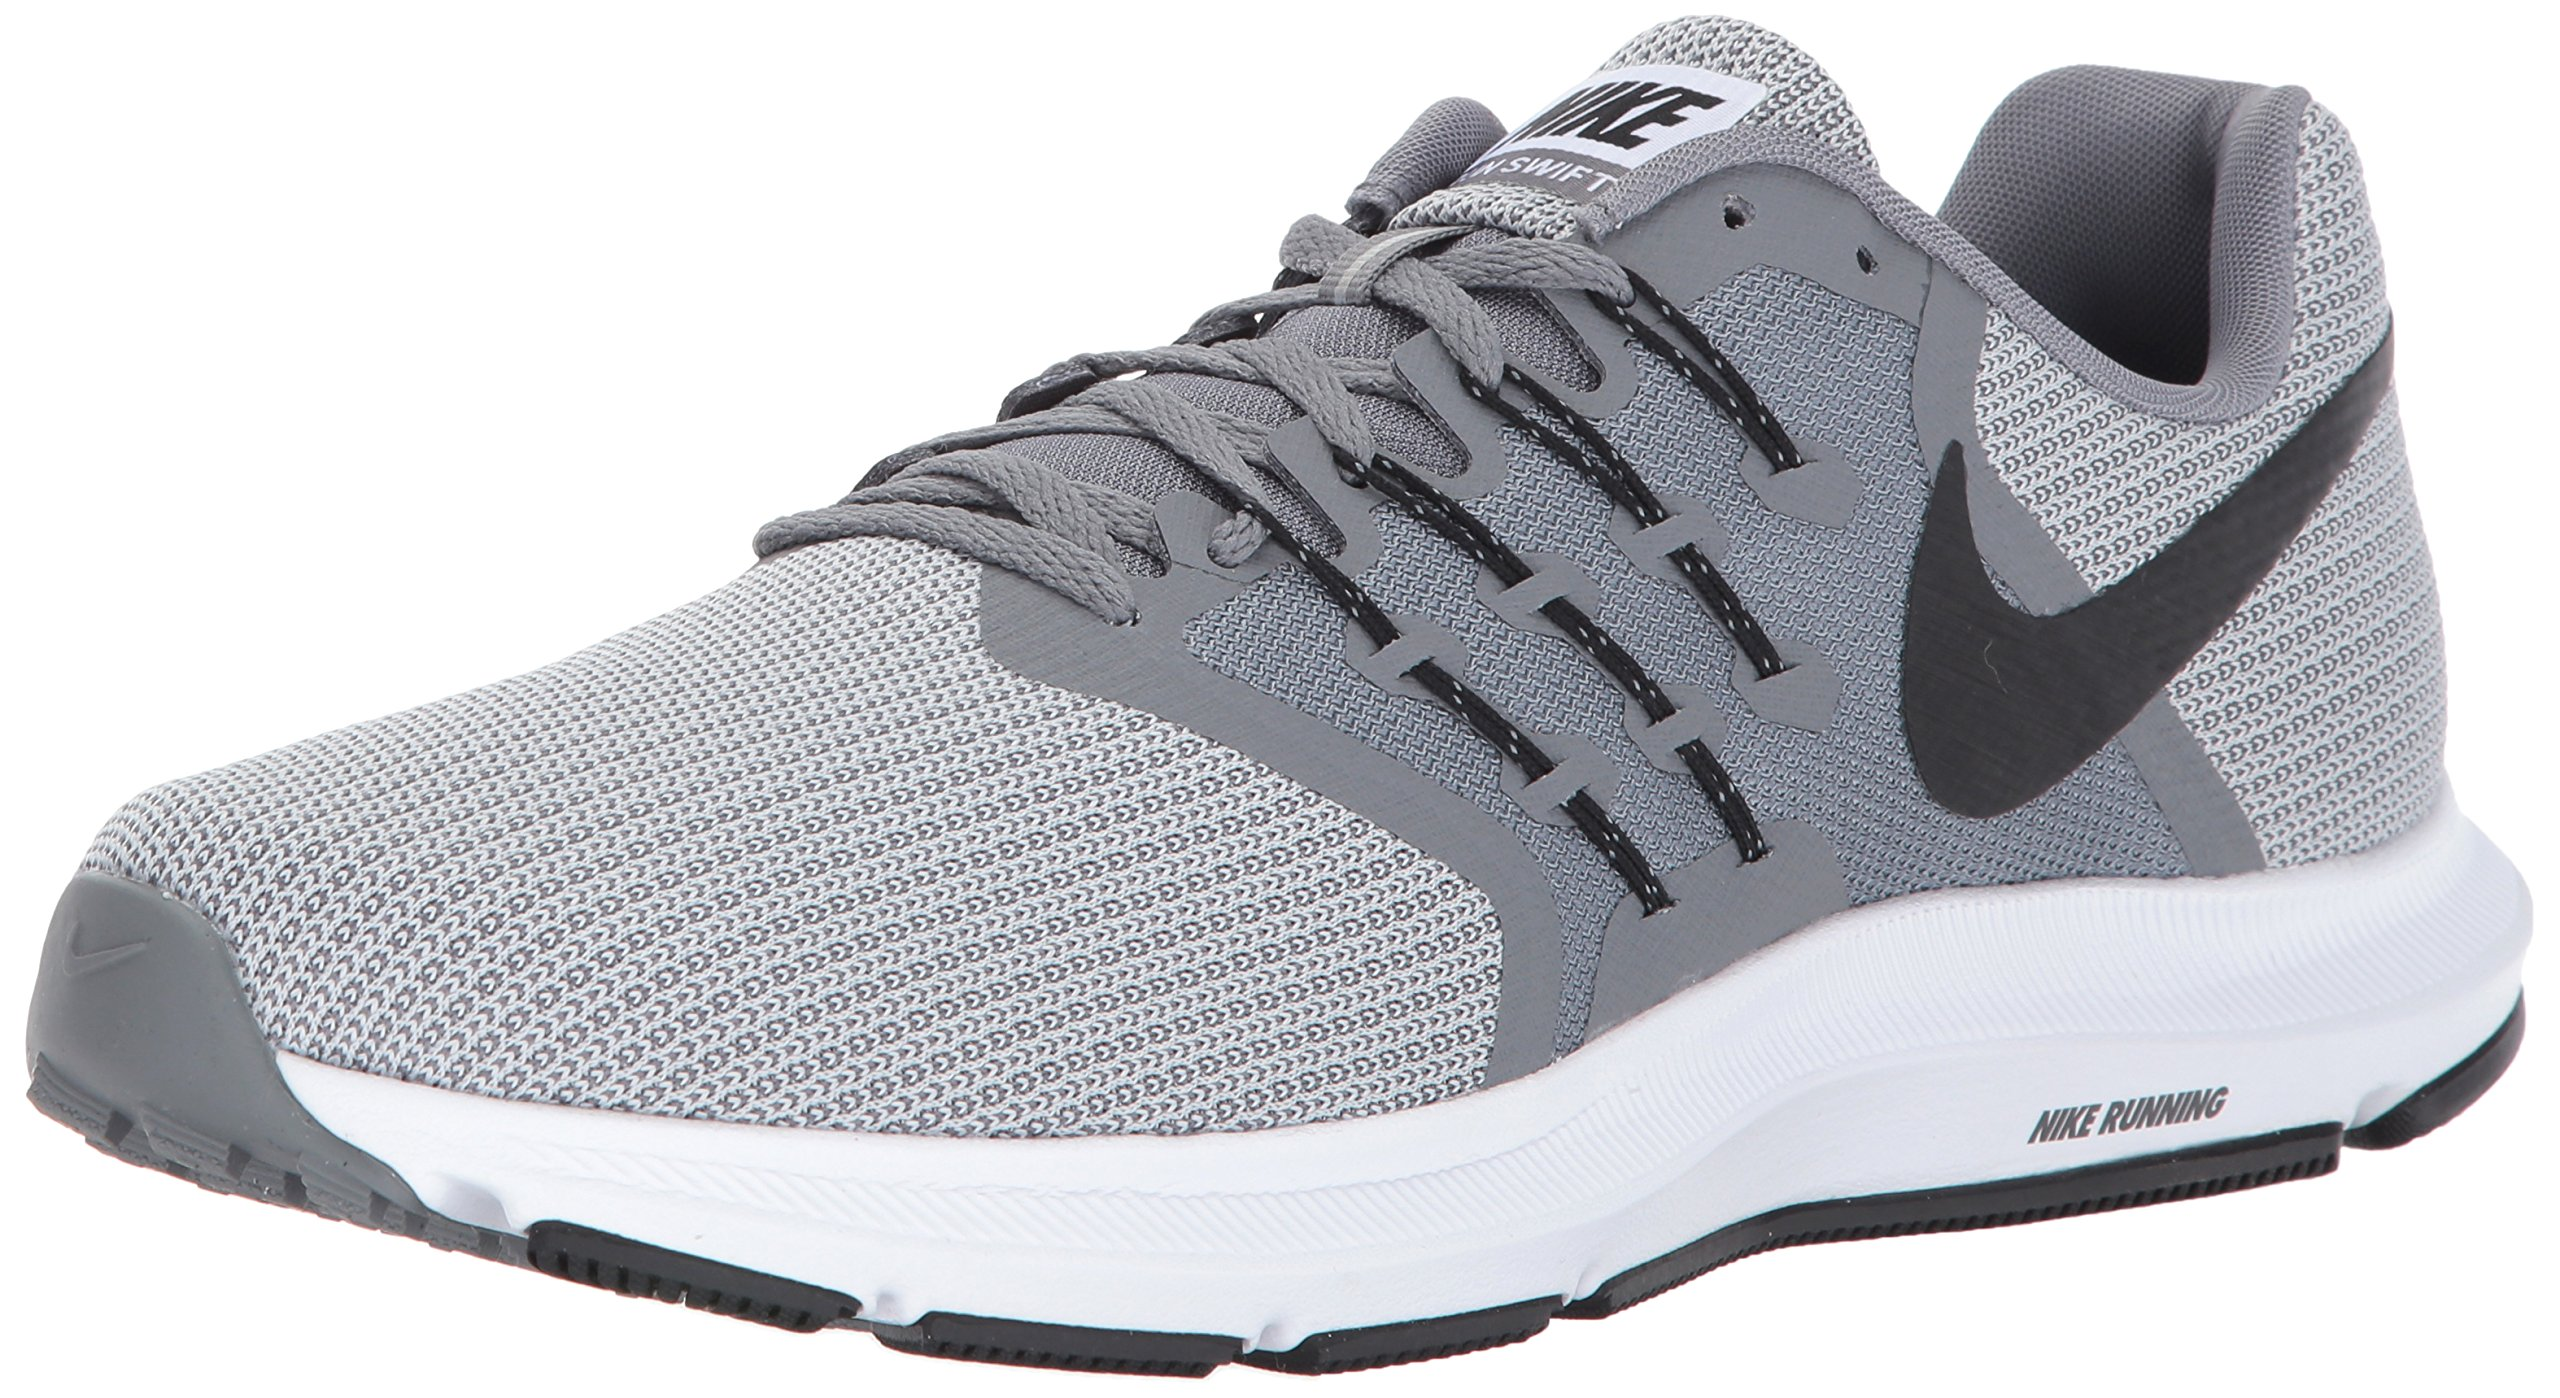 1f1be7818679b Galleon - Nike Men's Run Swift Shoe, Cool Wolf Grey-Black, 6.5 Regular US